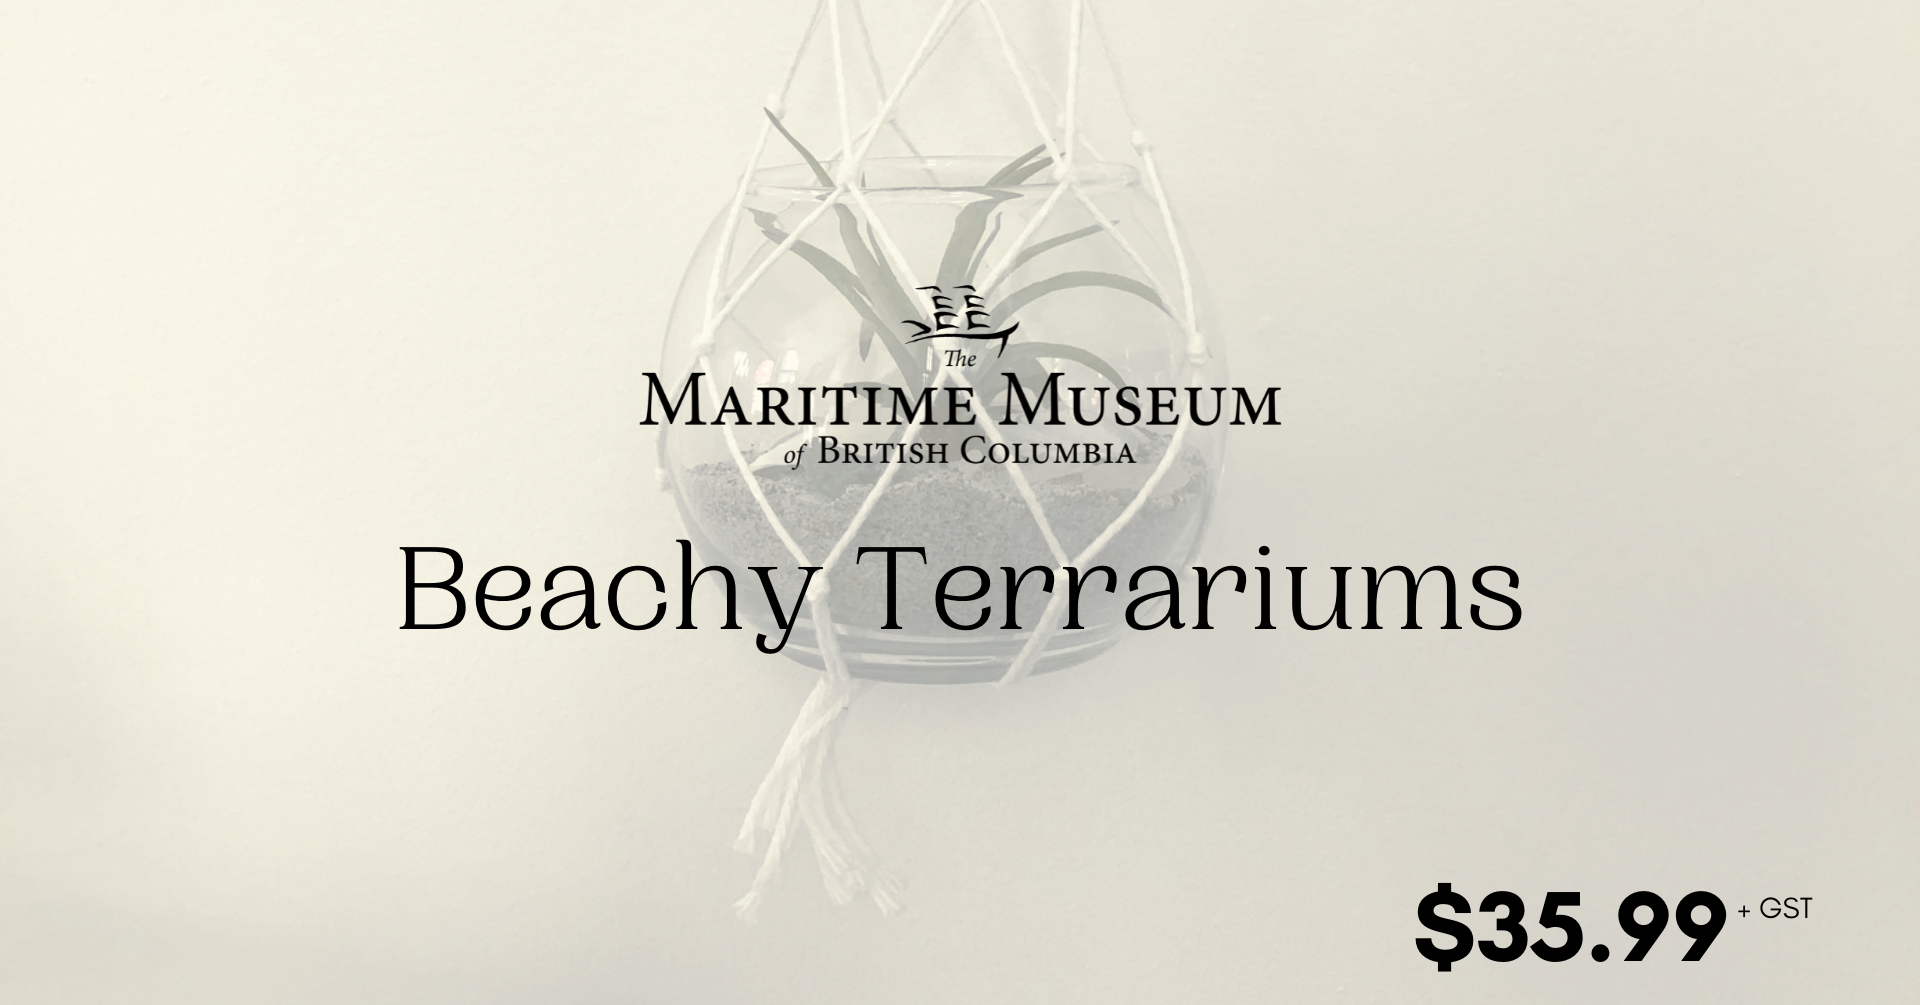 The words Beachy Terrariums in black on a background picturing an air plant in a spherical vase held up by macrame. The Maritime Museum of BC logo is top centre.